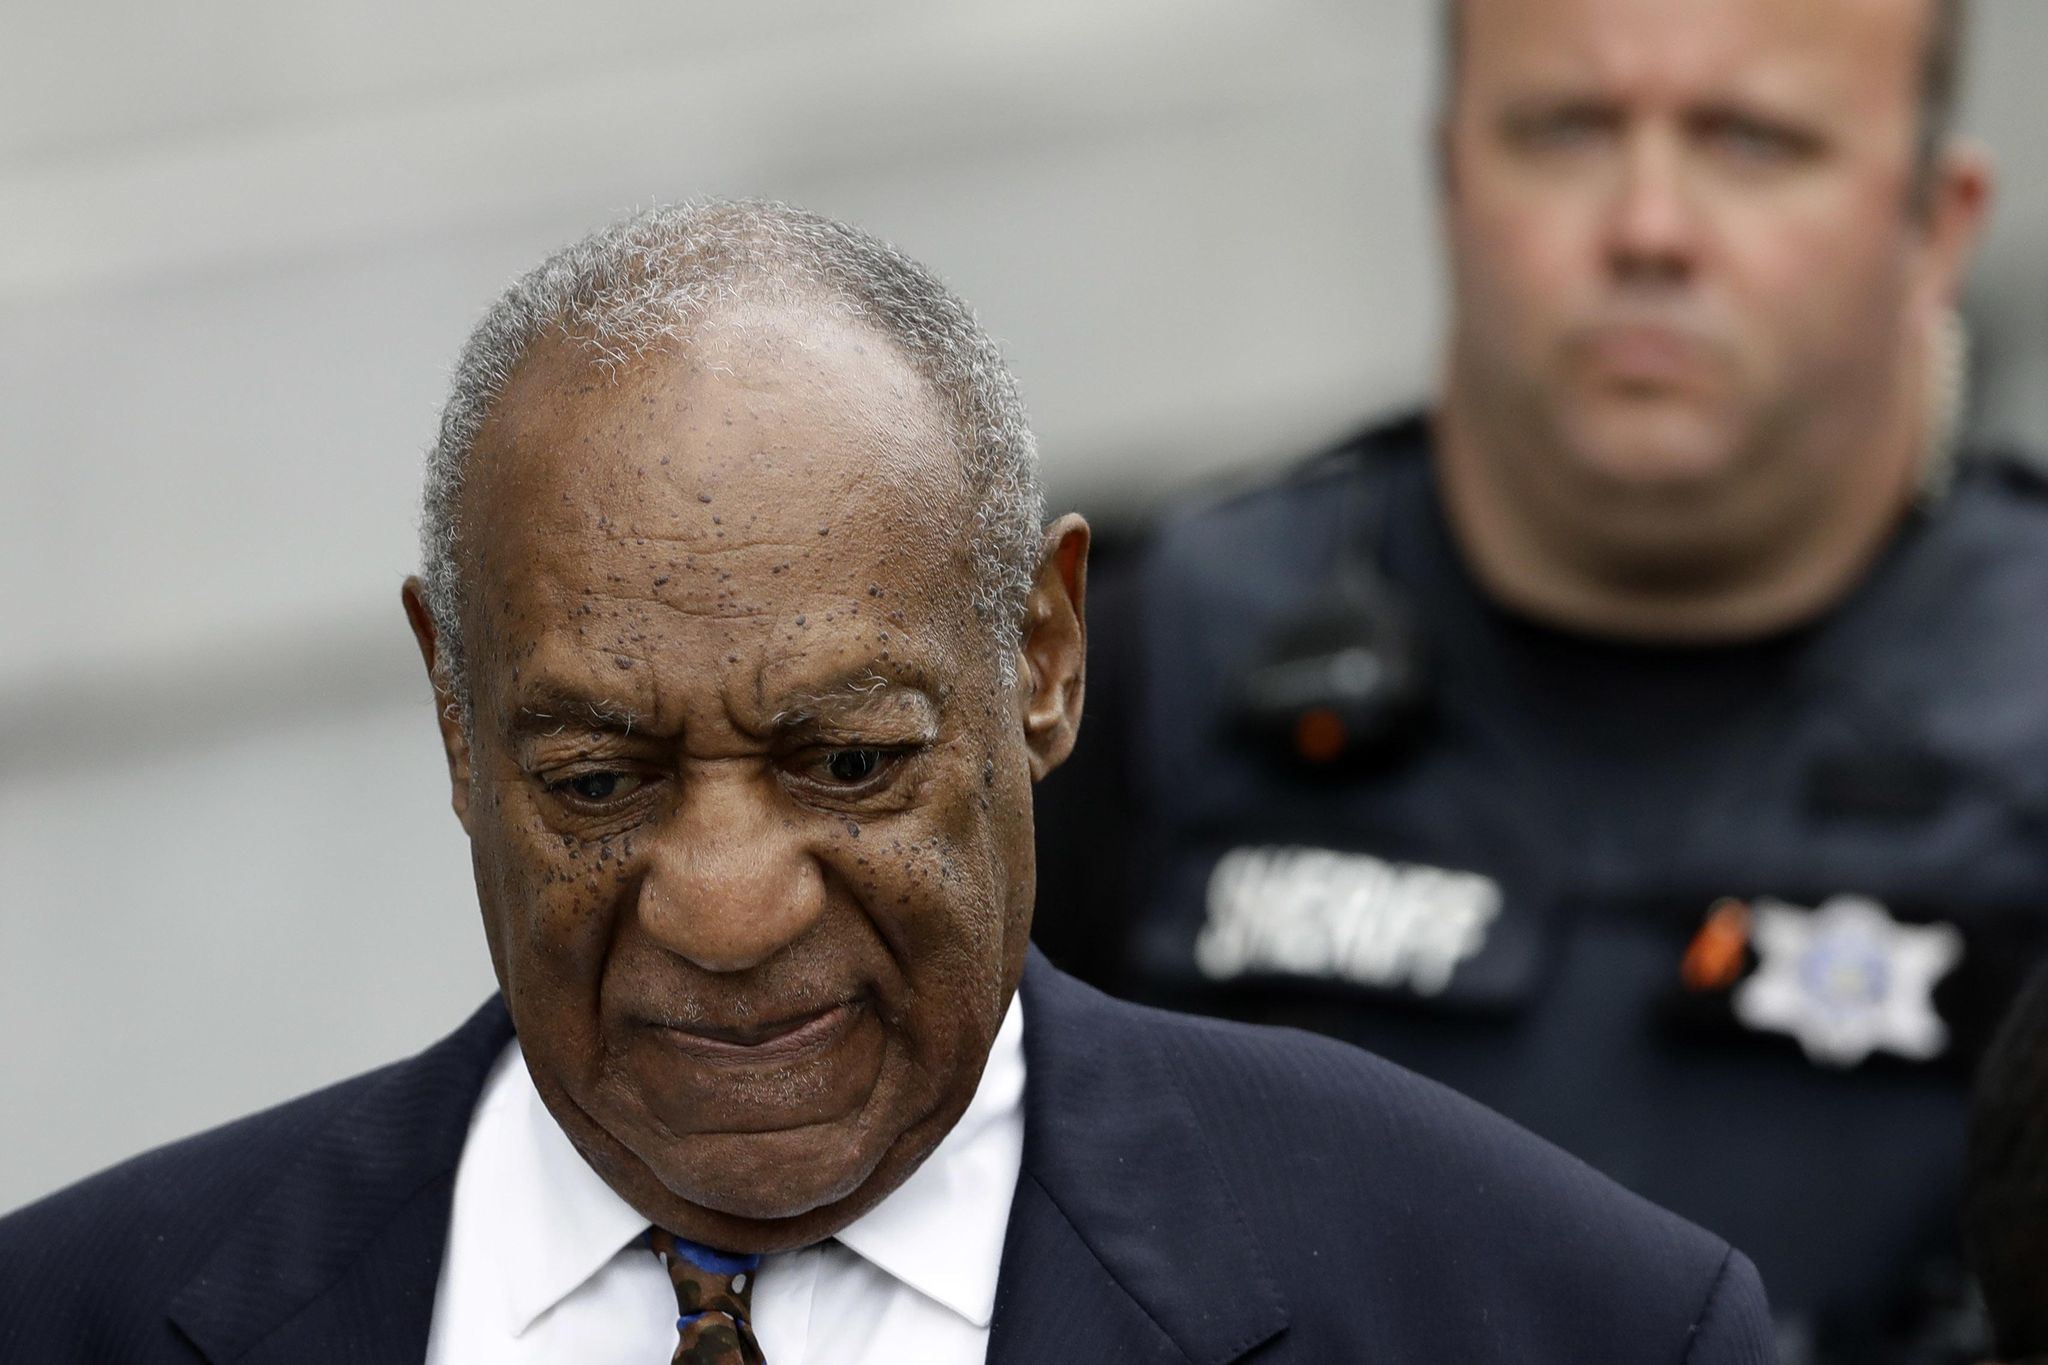 Cosby's day of reckoning comes after 3-year sex assault case - Washington Times